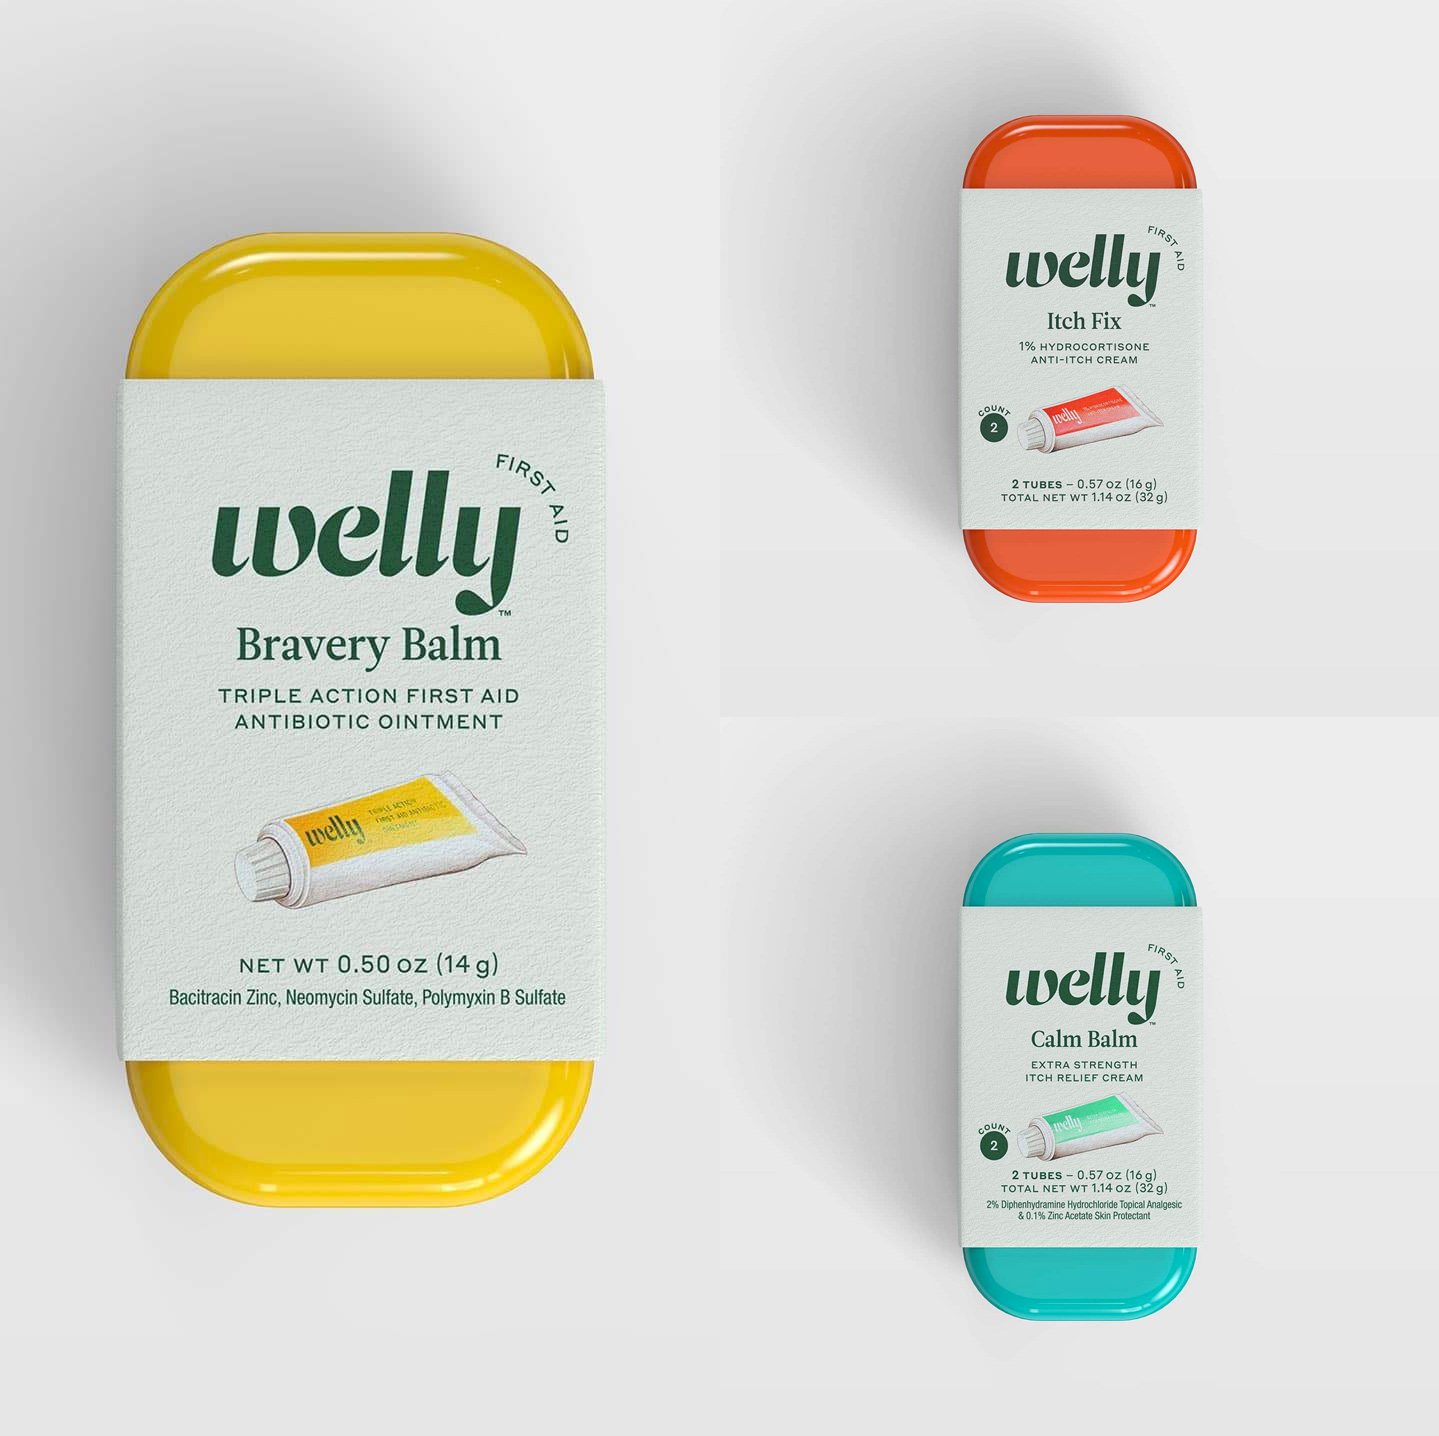 New Logo and Packaging for Welly by Partners&Spade and Prime Studio